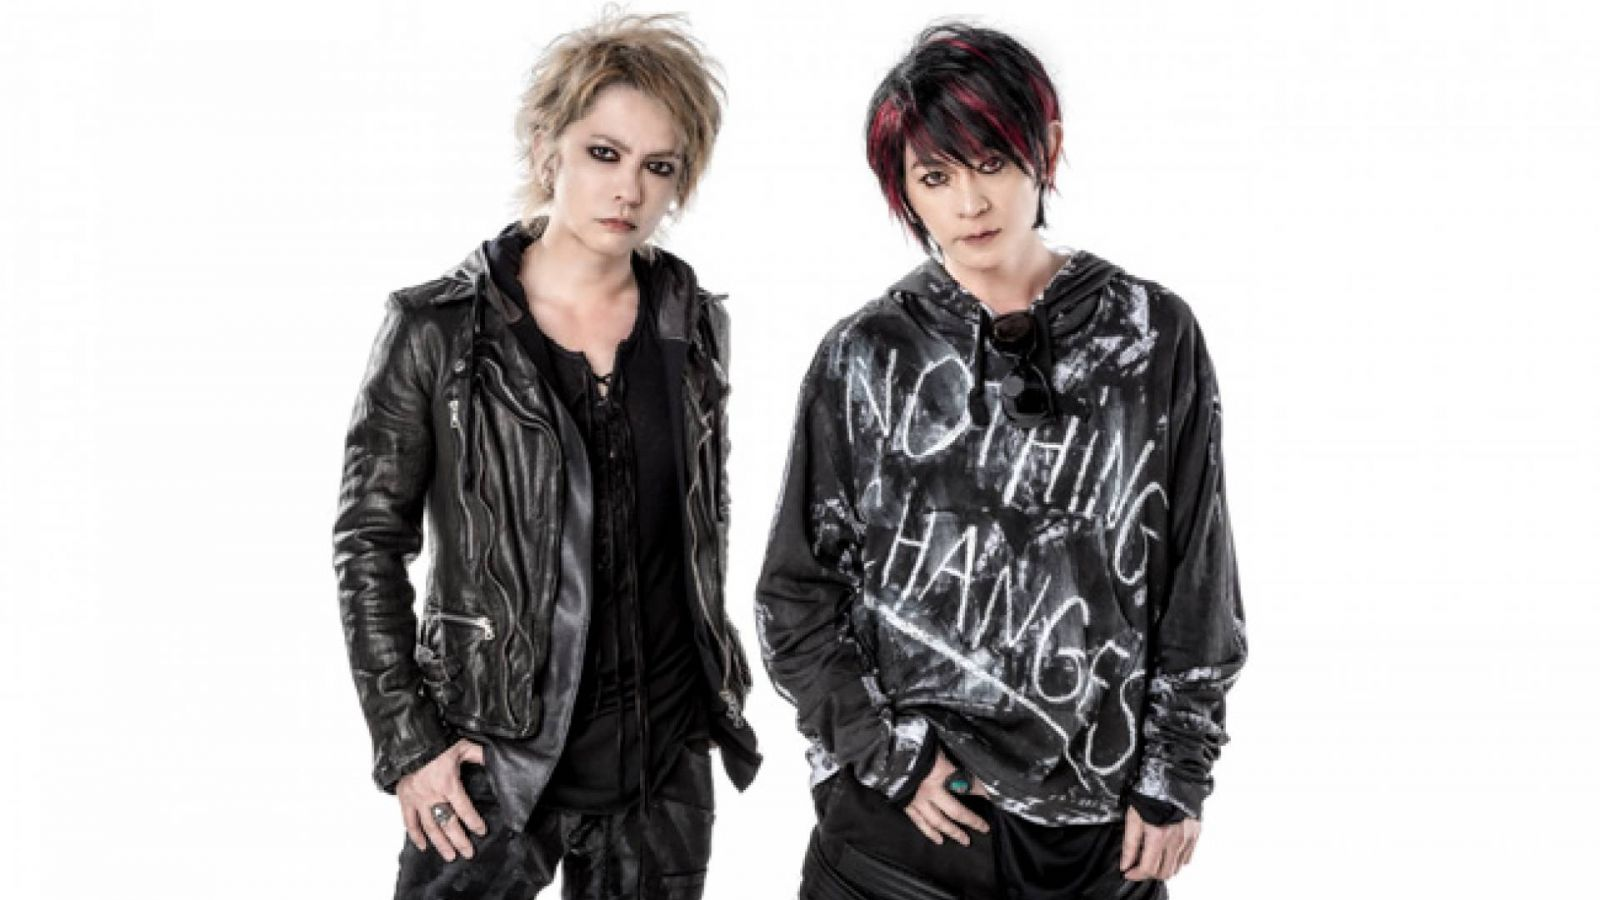 VAMPS © UNIVERSAL MUSIC LLC. All rights reserved.